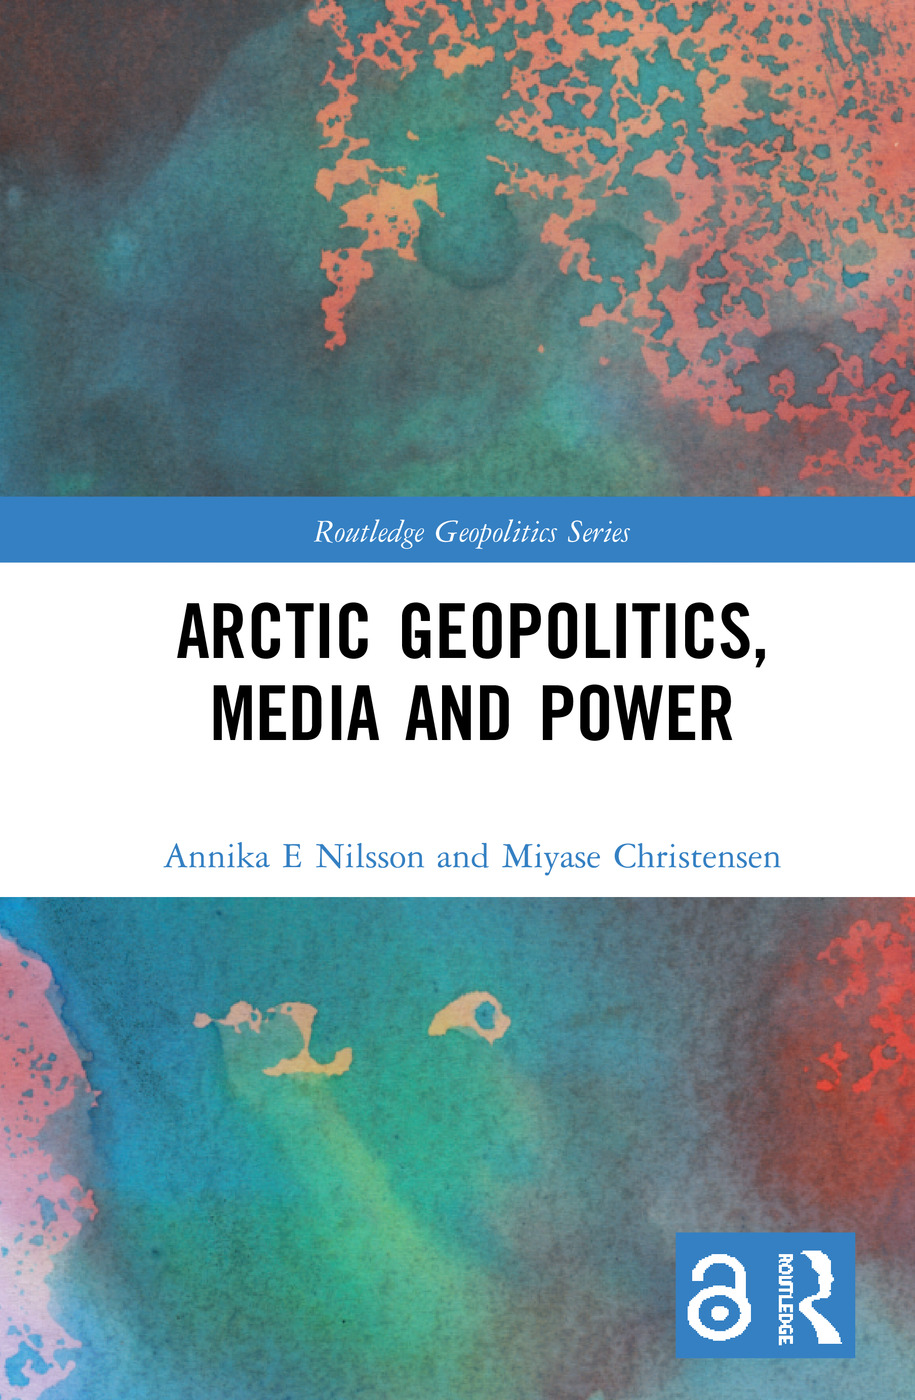 Arctic Geopolitics, Media and Power book cover